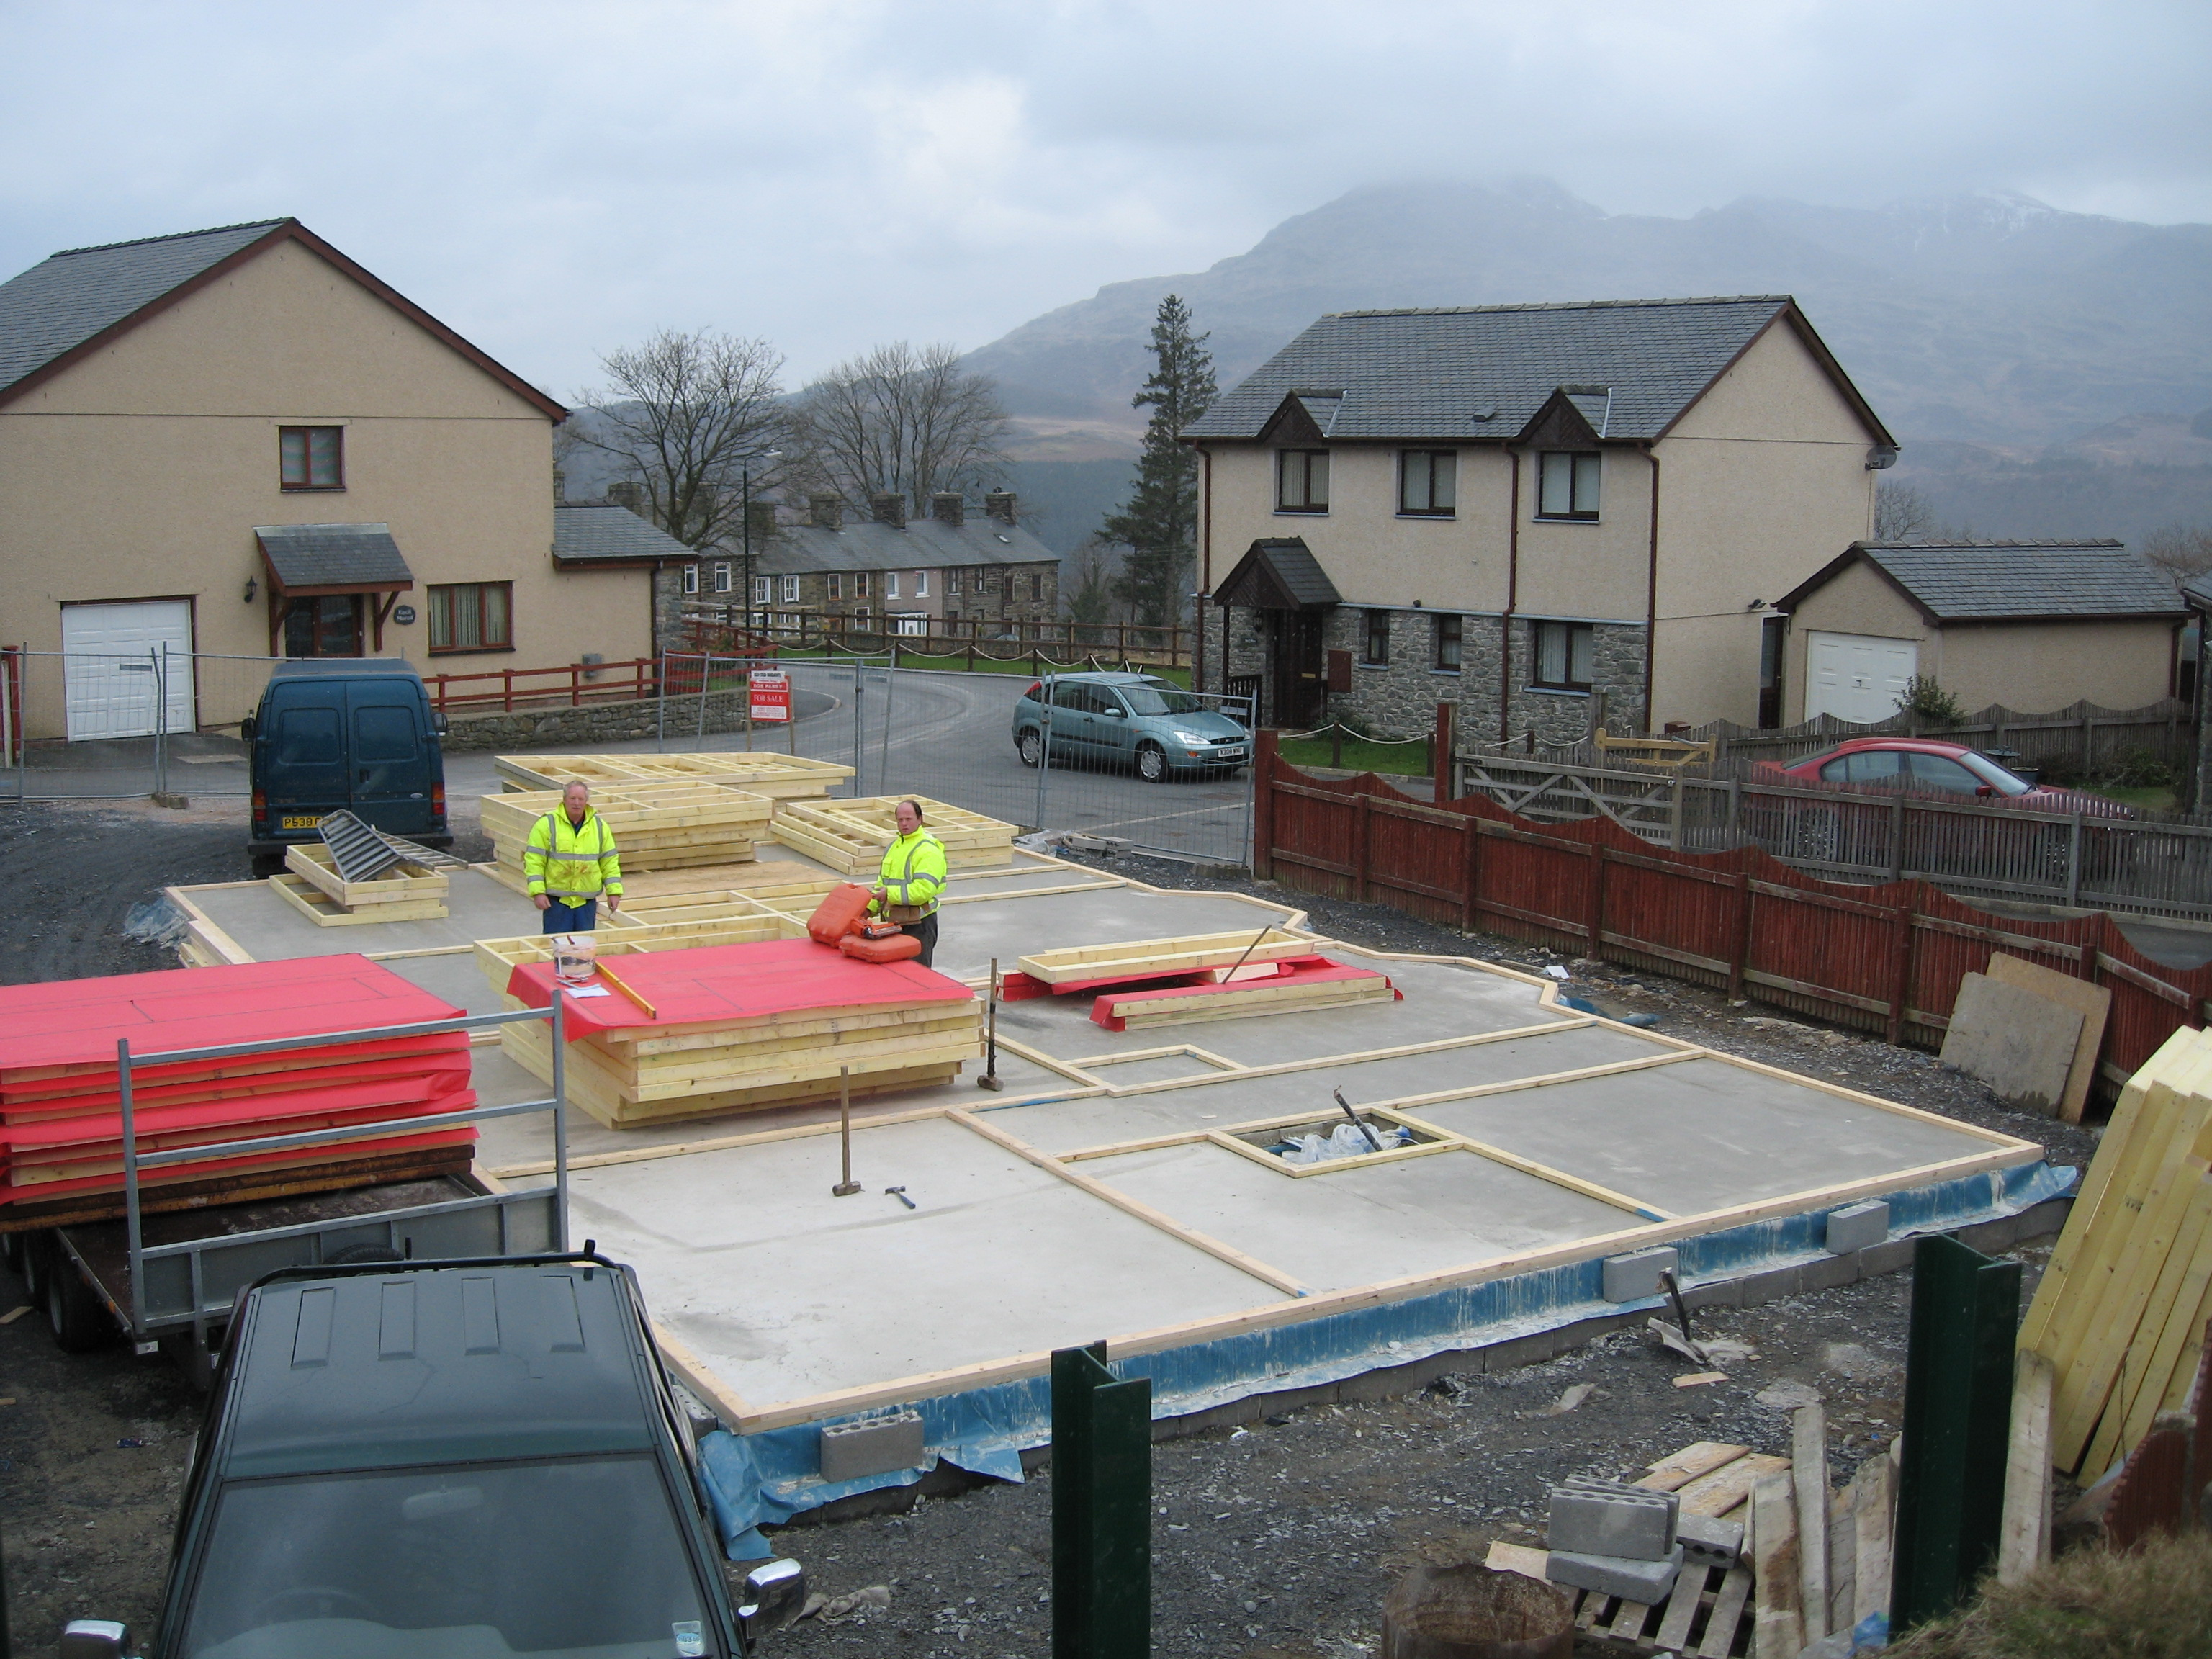 Our own development in Ffestiniog, Snowdonia